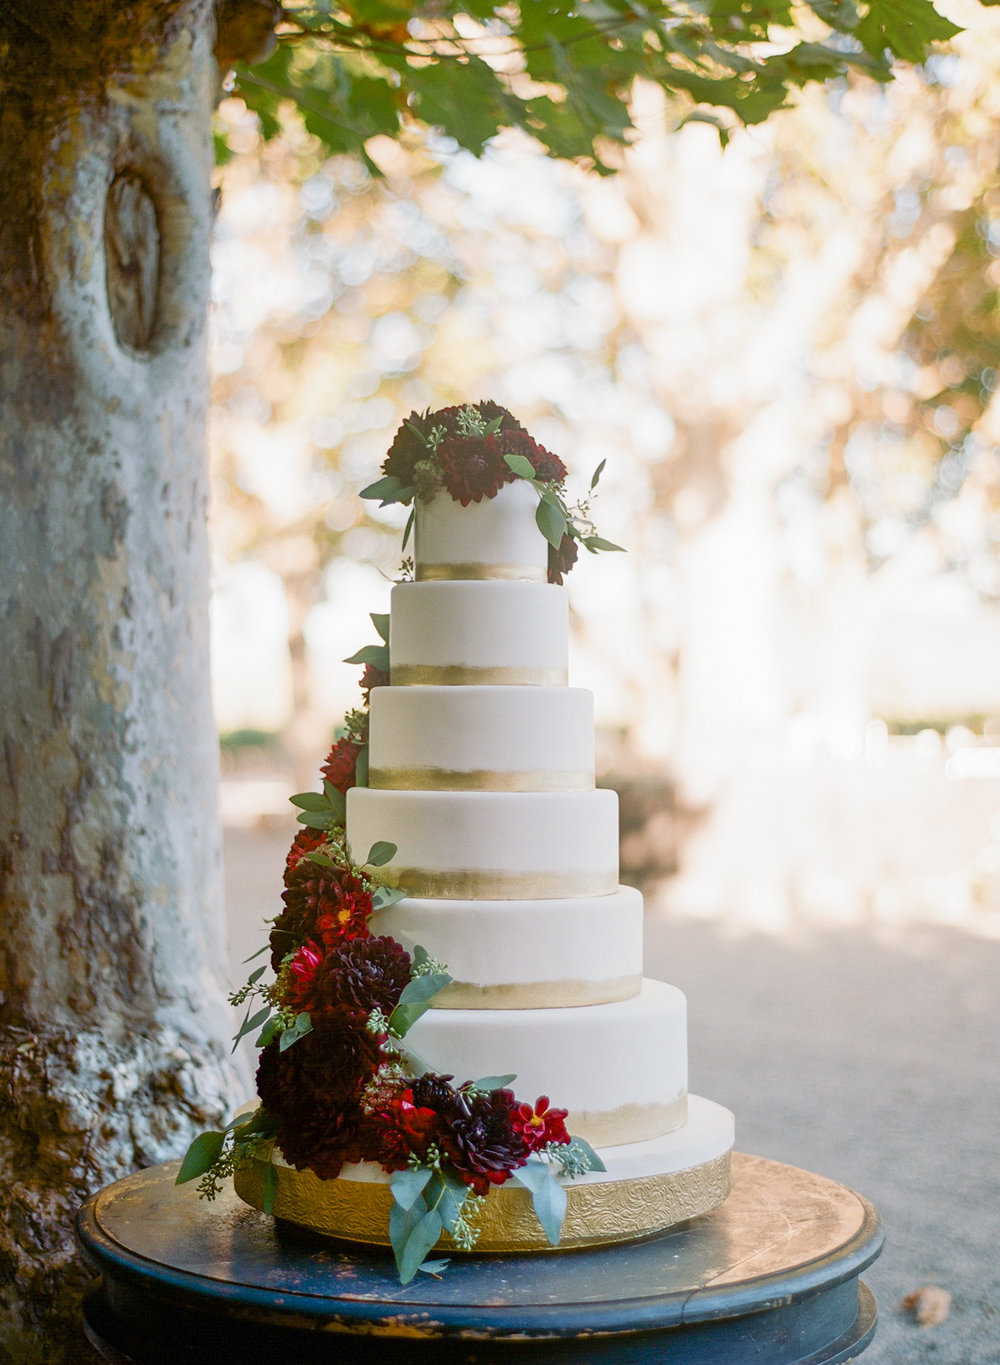 A six-tier, gold-trimmed wedding cake decorated with burgundy dahlias and eucalyptus leaves; Sylvie Gil Photography